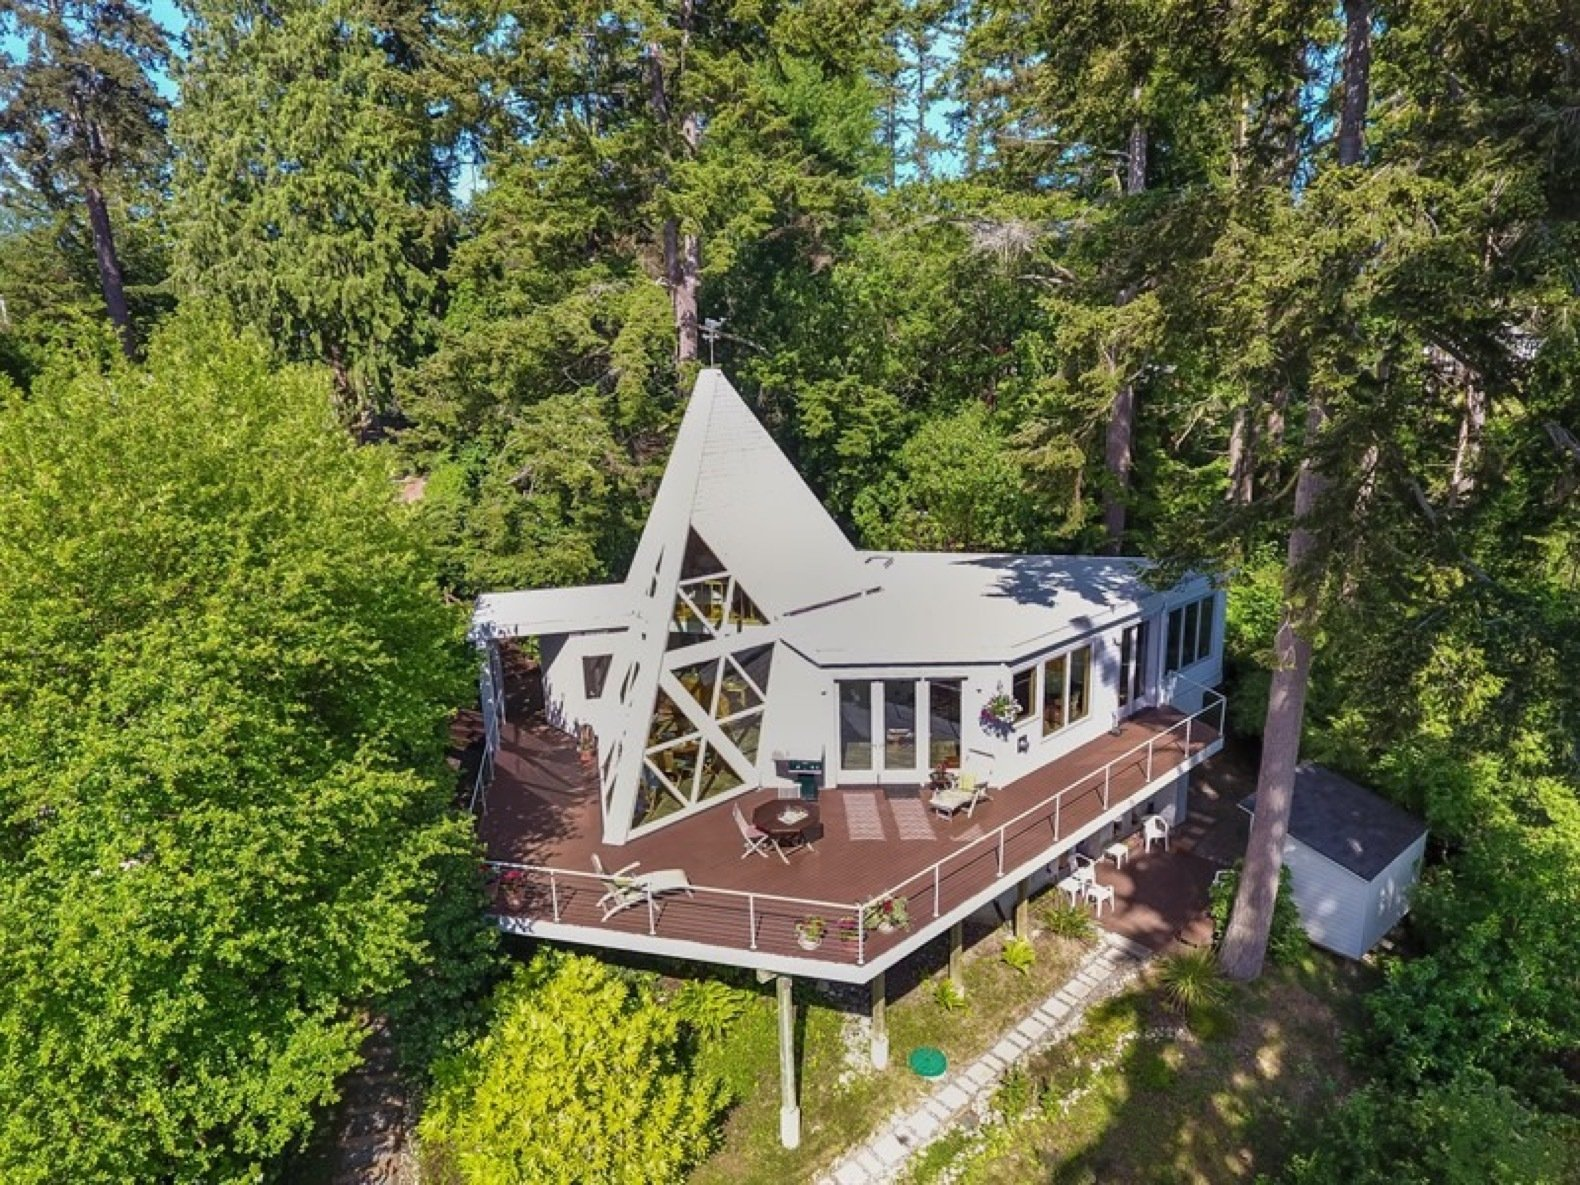 Exterior, House Building Type, Flat RoofLine, Wood Siding Material, Shingles Roof Material, and Cabin Building Type A Bellevue architect designed the home's original tetrahedron shape, which has striking triangular windows that overlook the Saratoga Pass.     Photo 1 of 11 in A Tetrahedron Cabin With Stellar Seaside Views Is Listed For $695K